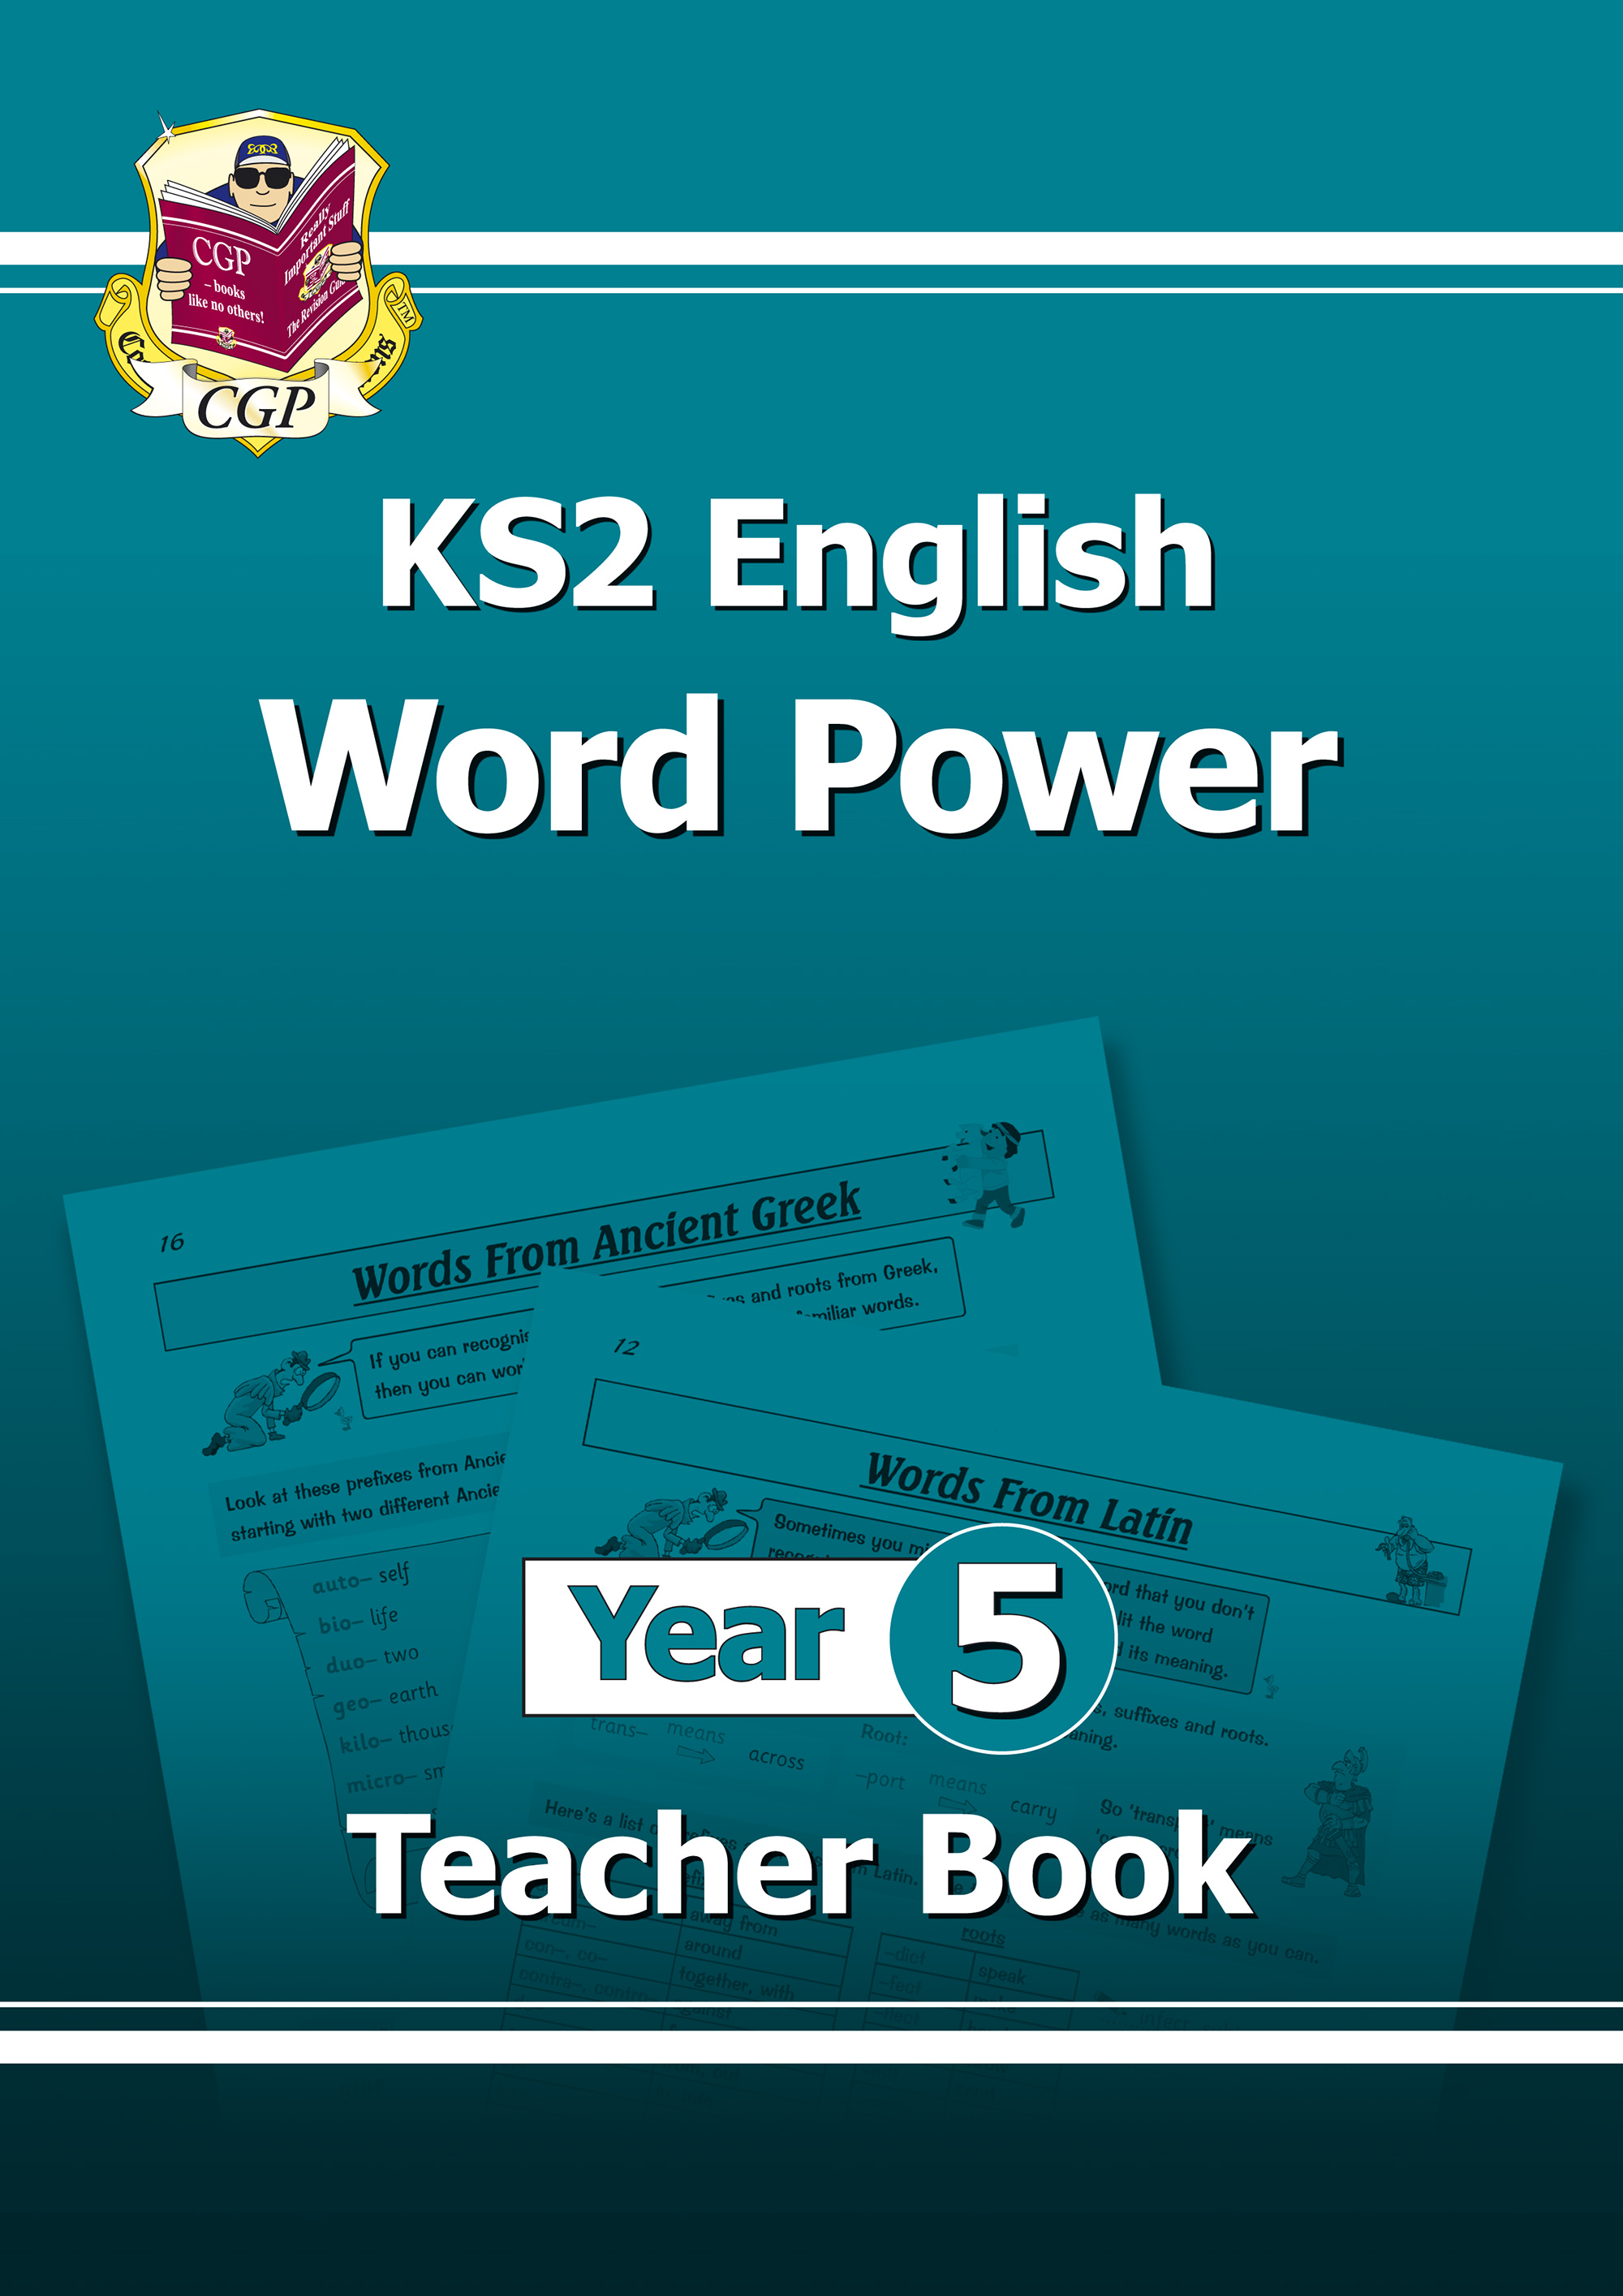 E5WPT21 - KS2 English Word Power: Teacher Book - Year 5